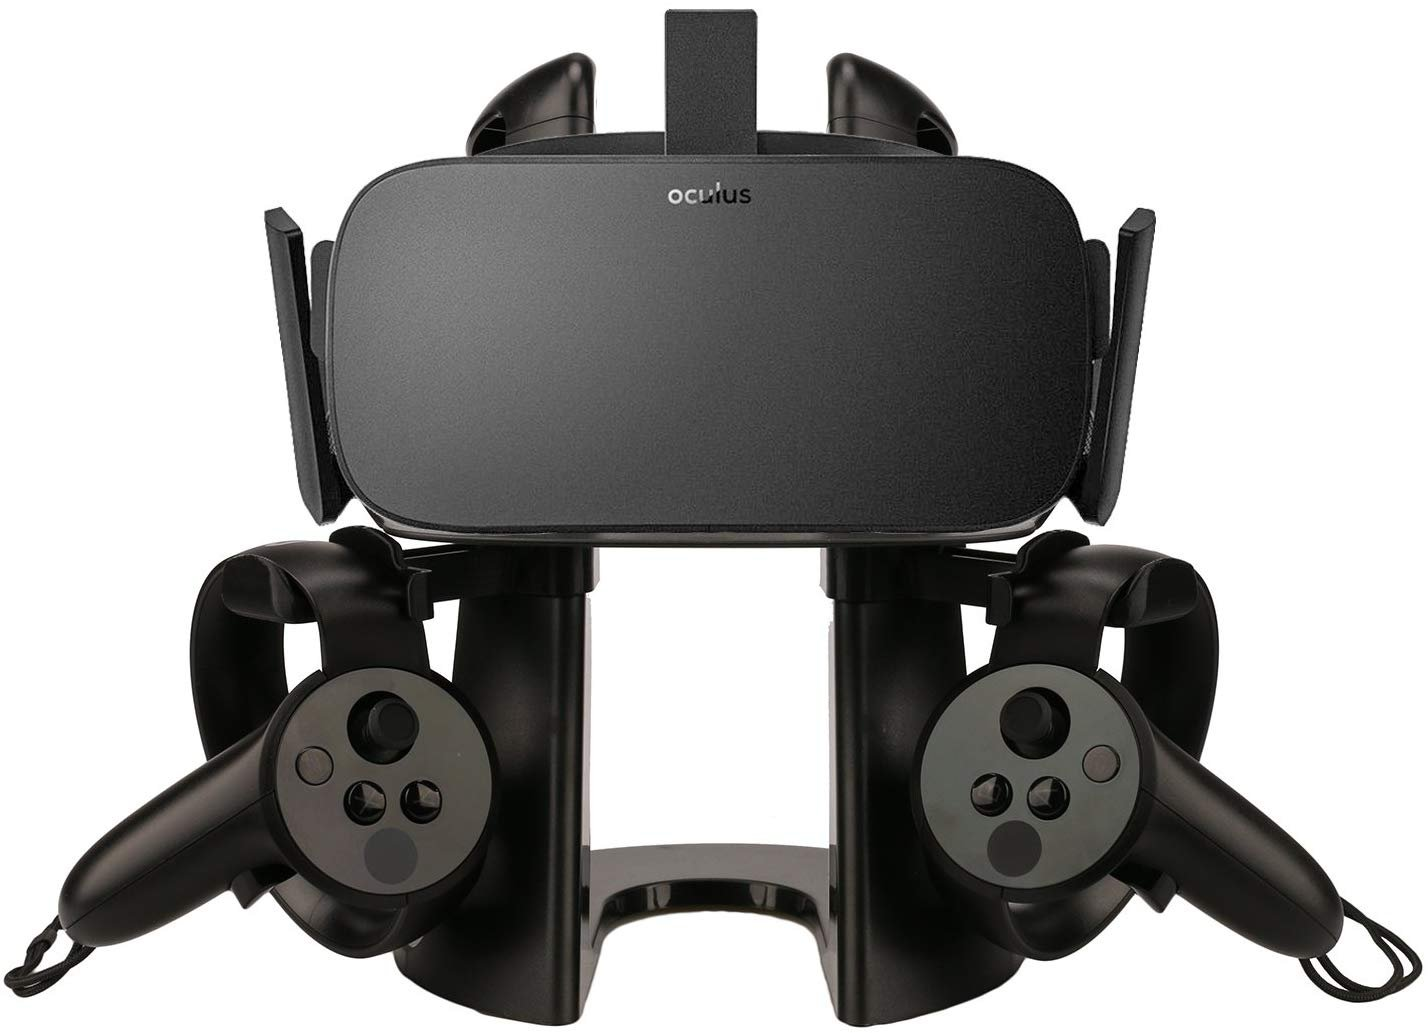 AFATIH VR Stand, Headset Display Stand for Oculus Rift or Rift S Headset with Touch Controller, VR Holder for Oculus Quest, HTC Vive & Vive PRO, Playstation VR and Other VR by AFAITH